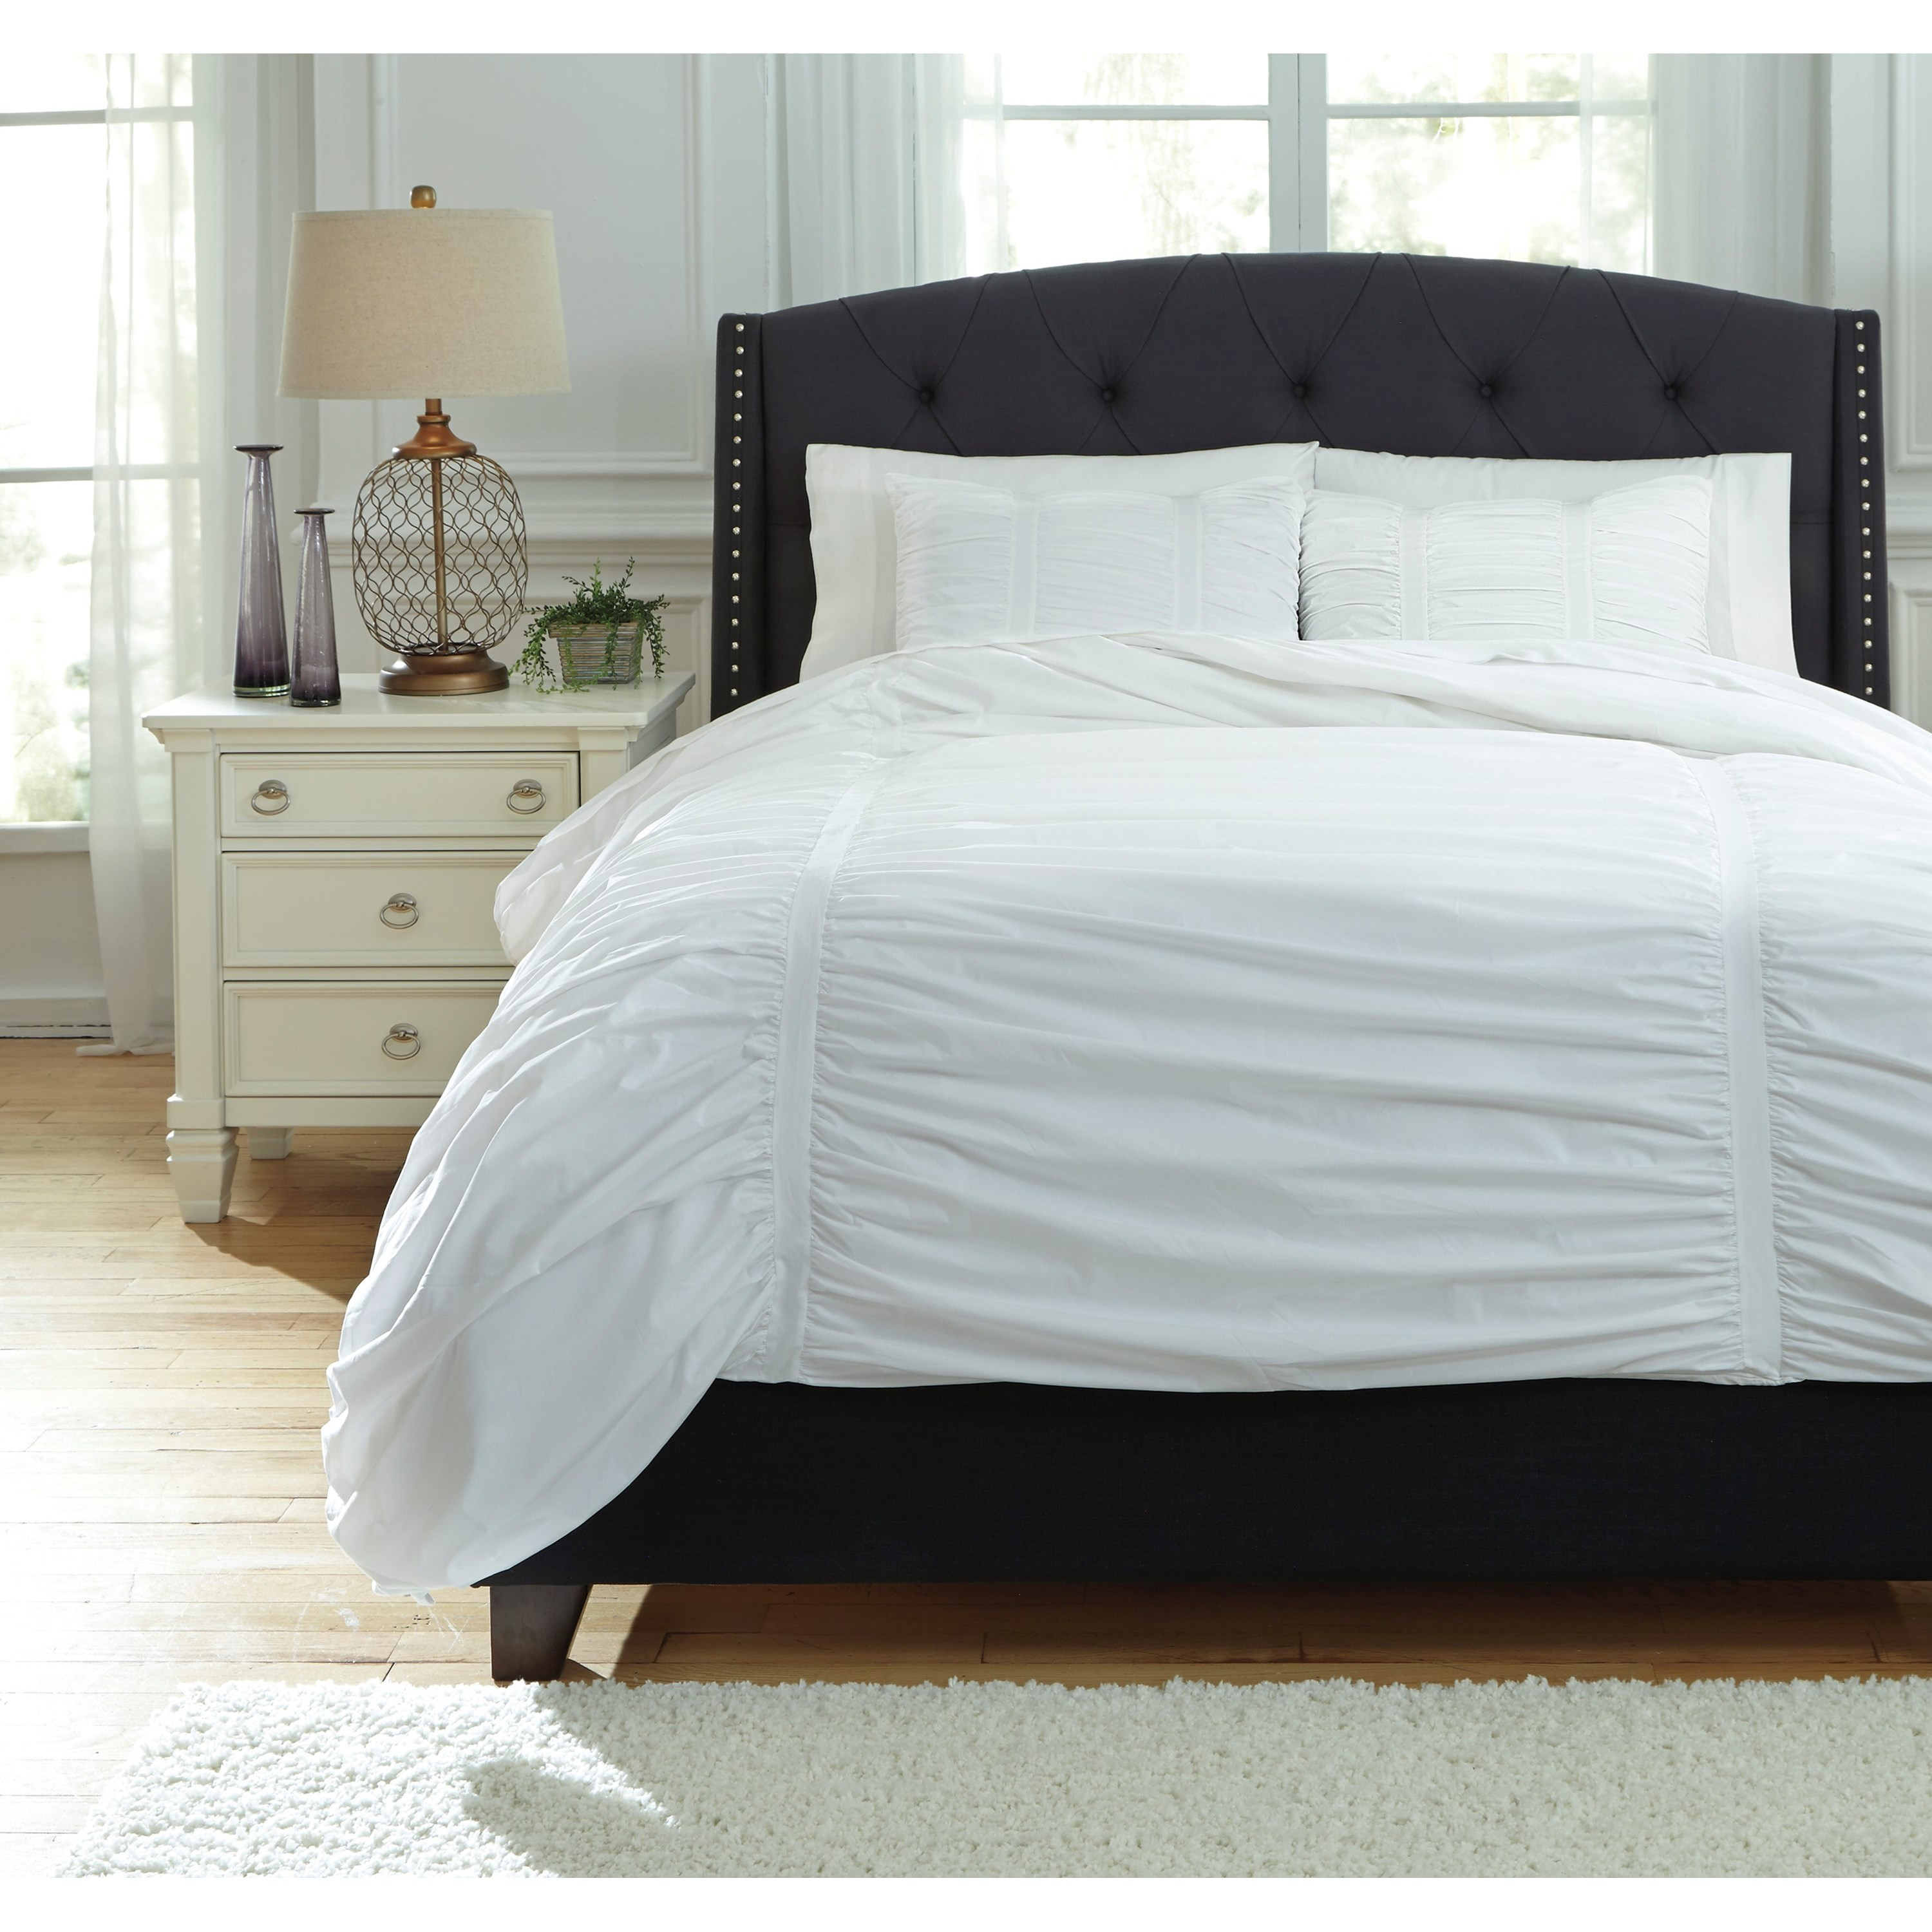 Signature Design by Ashley Bedding Sets Queen Tufton White Duvet Cover Set - Item Number: Q753003Q